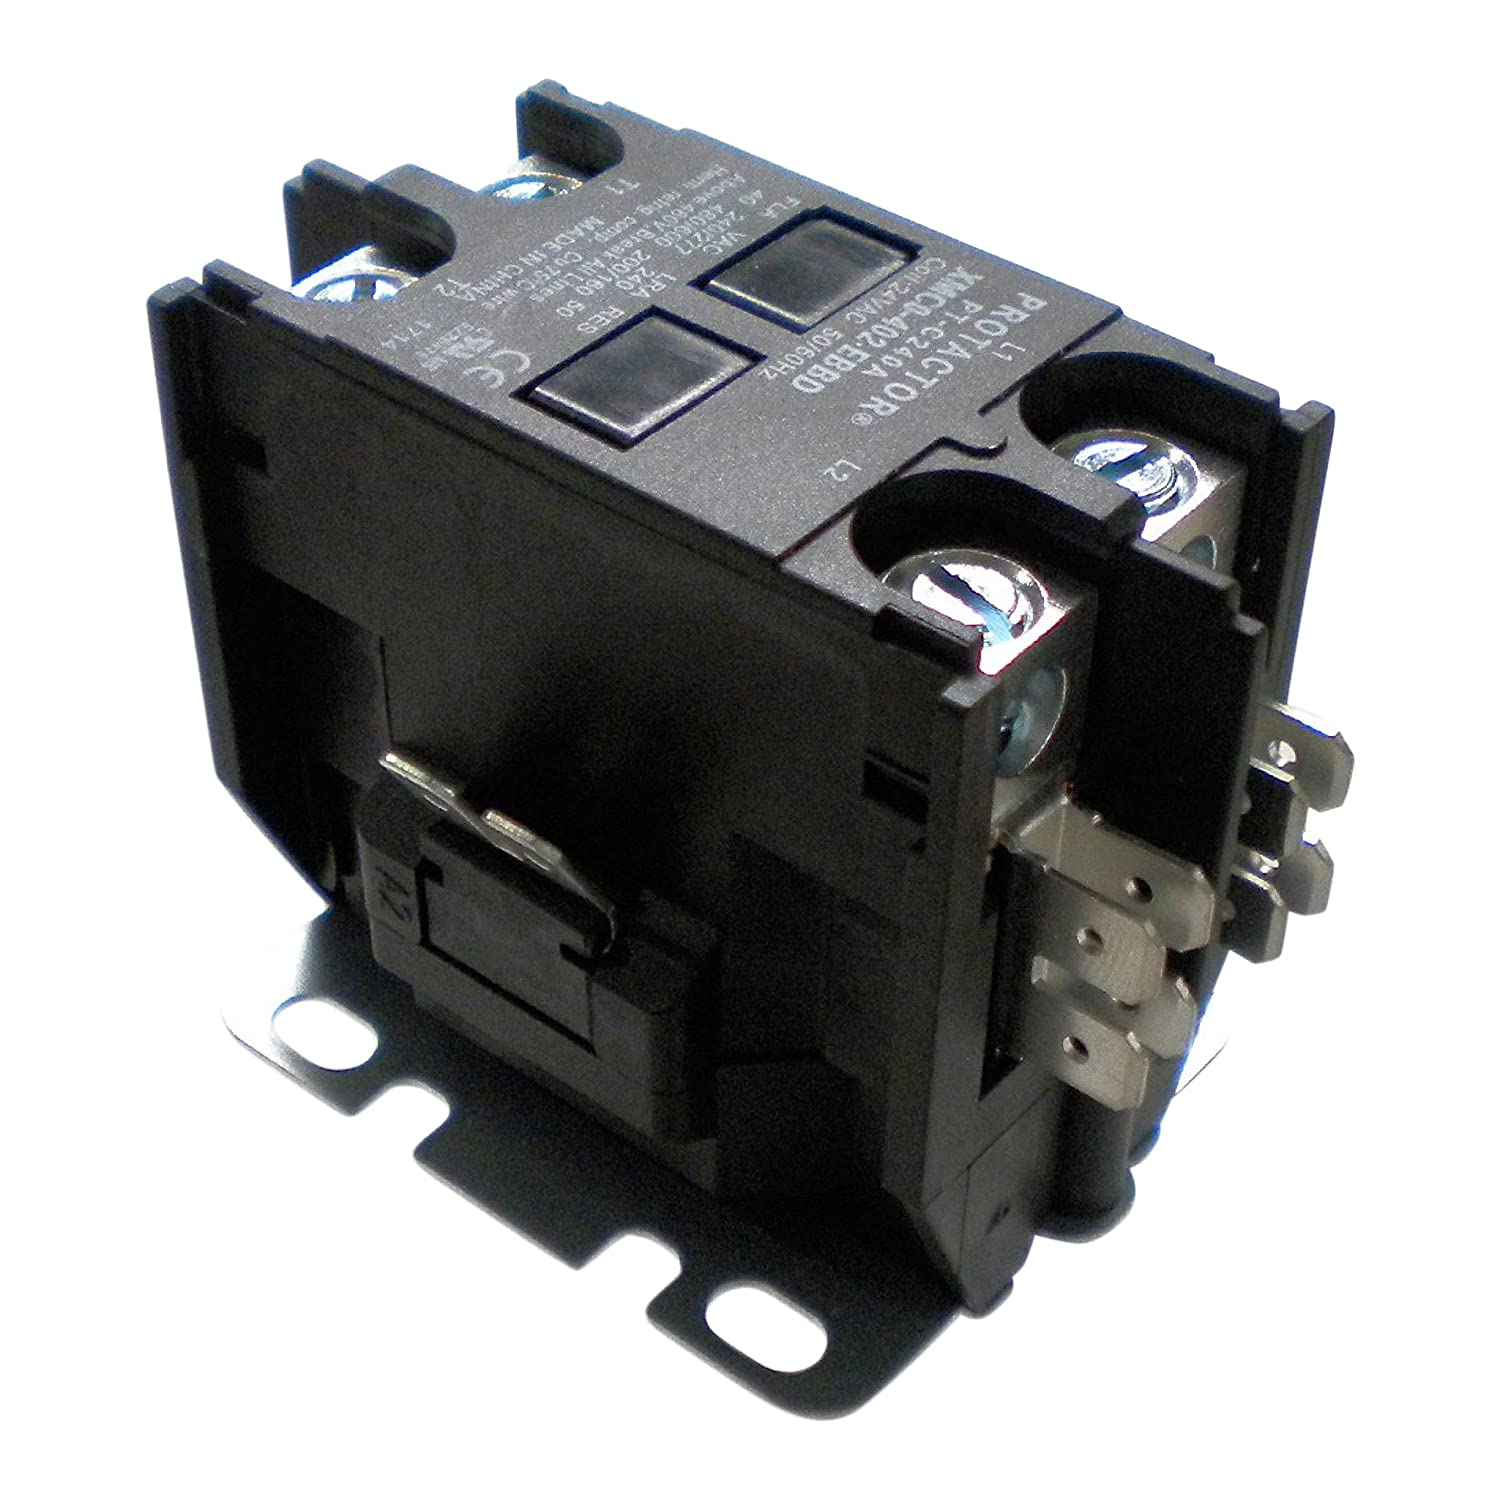 Protactor 2 Pole 40 Amp Heavy Duty Ac Contactor Replaces Virtually Carrier Wiring Diagram All Residential Models